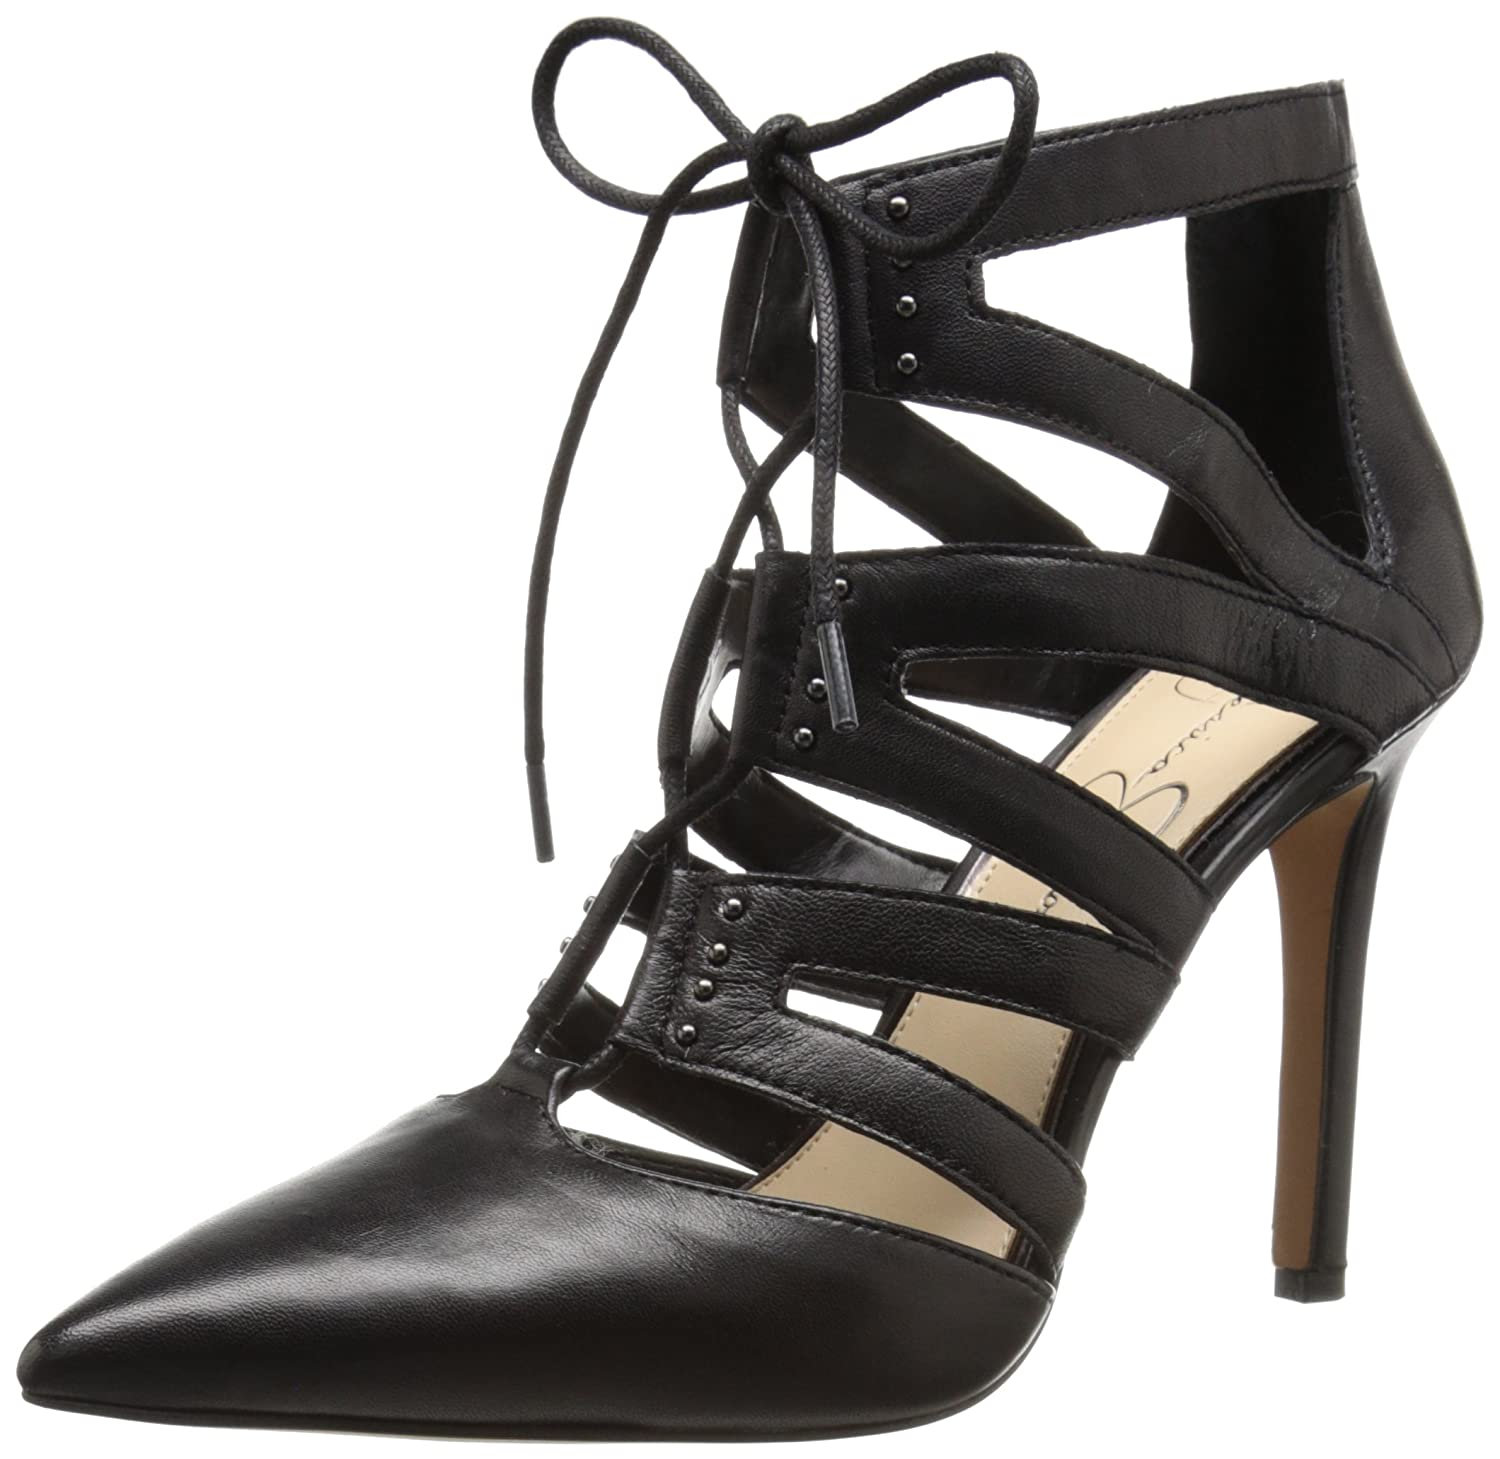 Watch - Simpson Jessica shoes pictures video